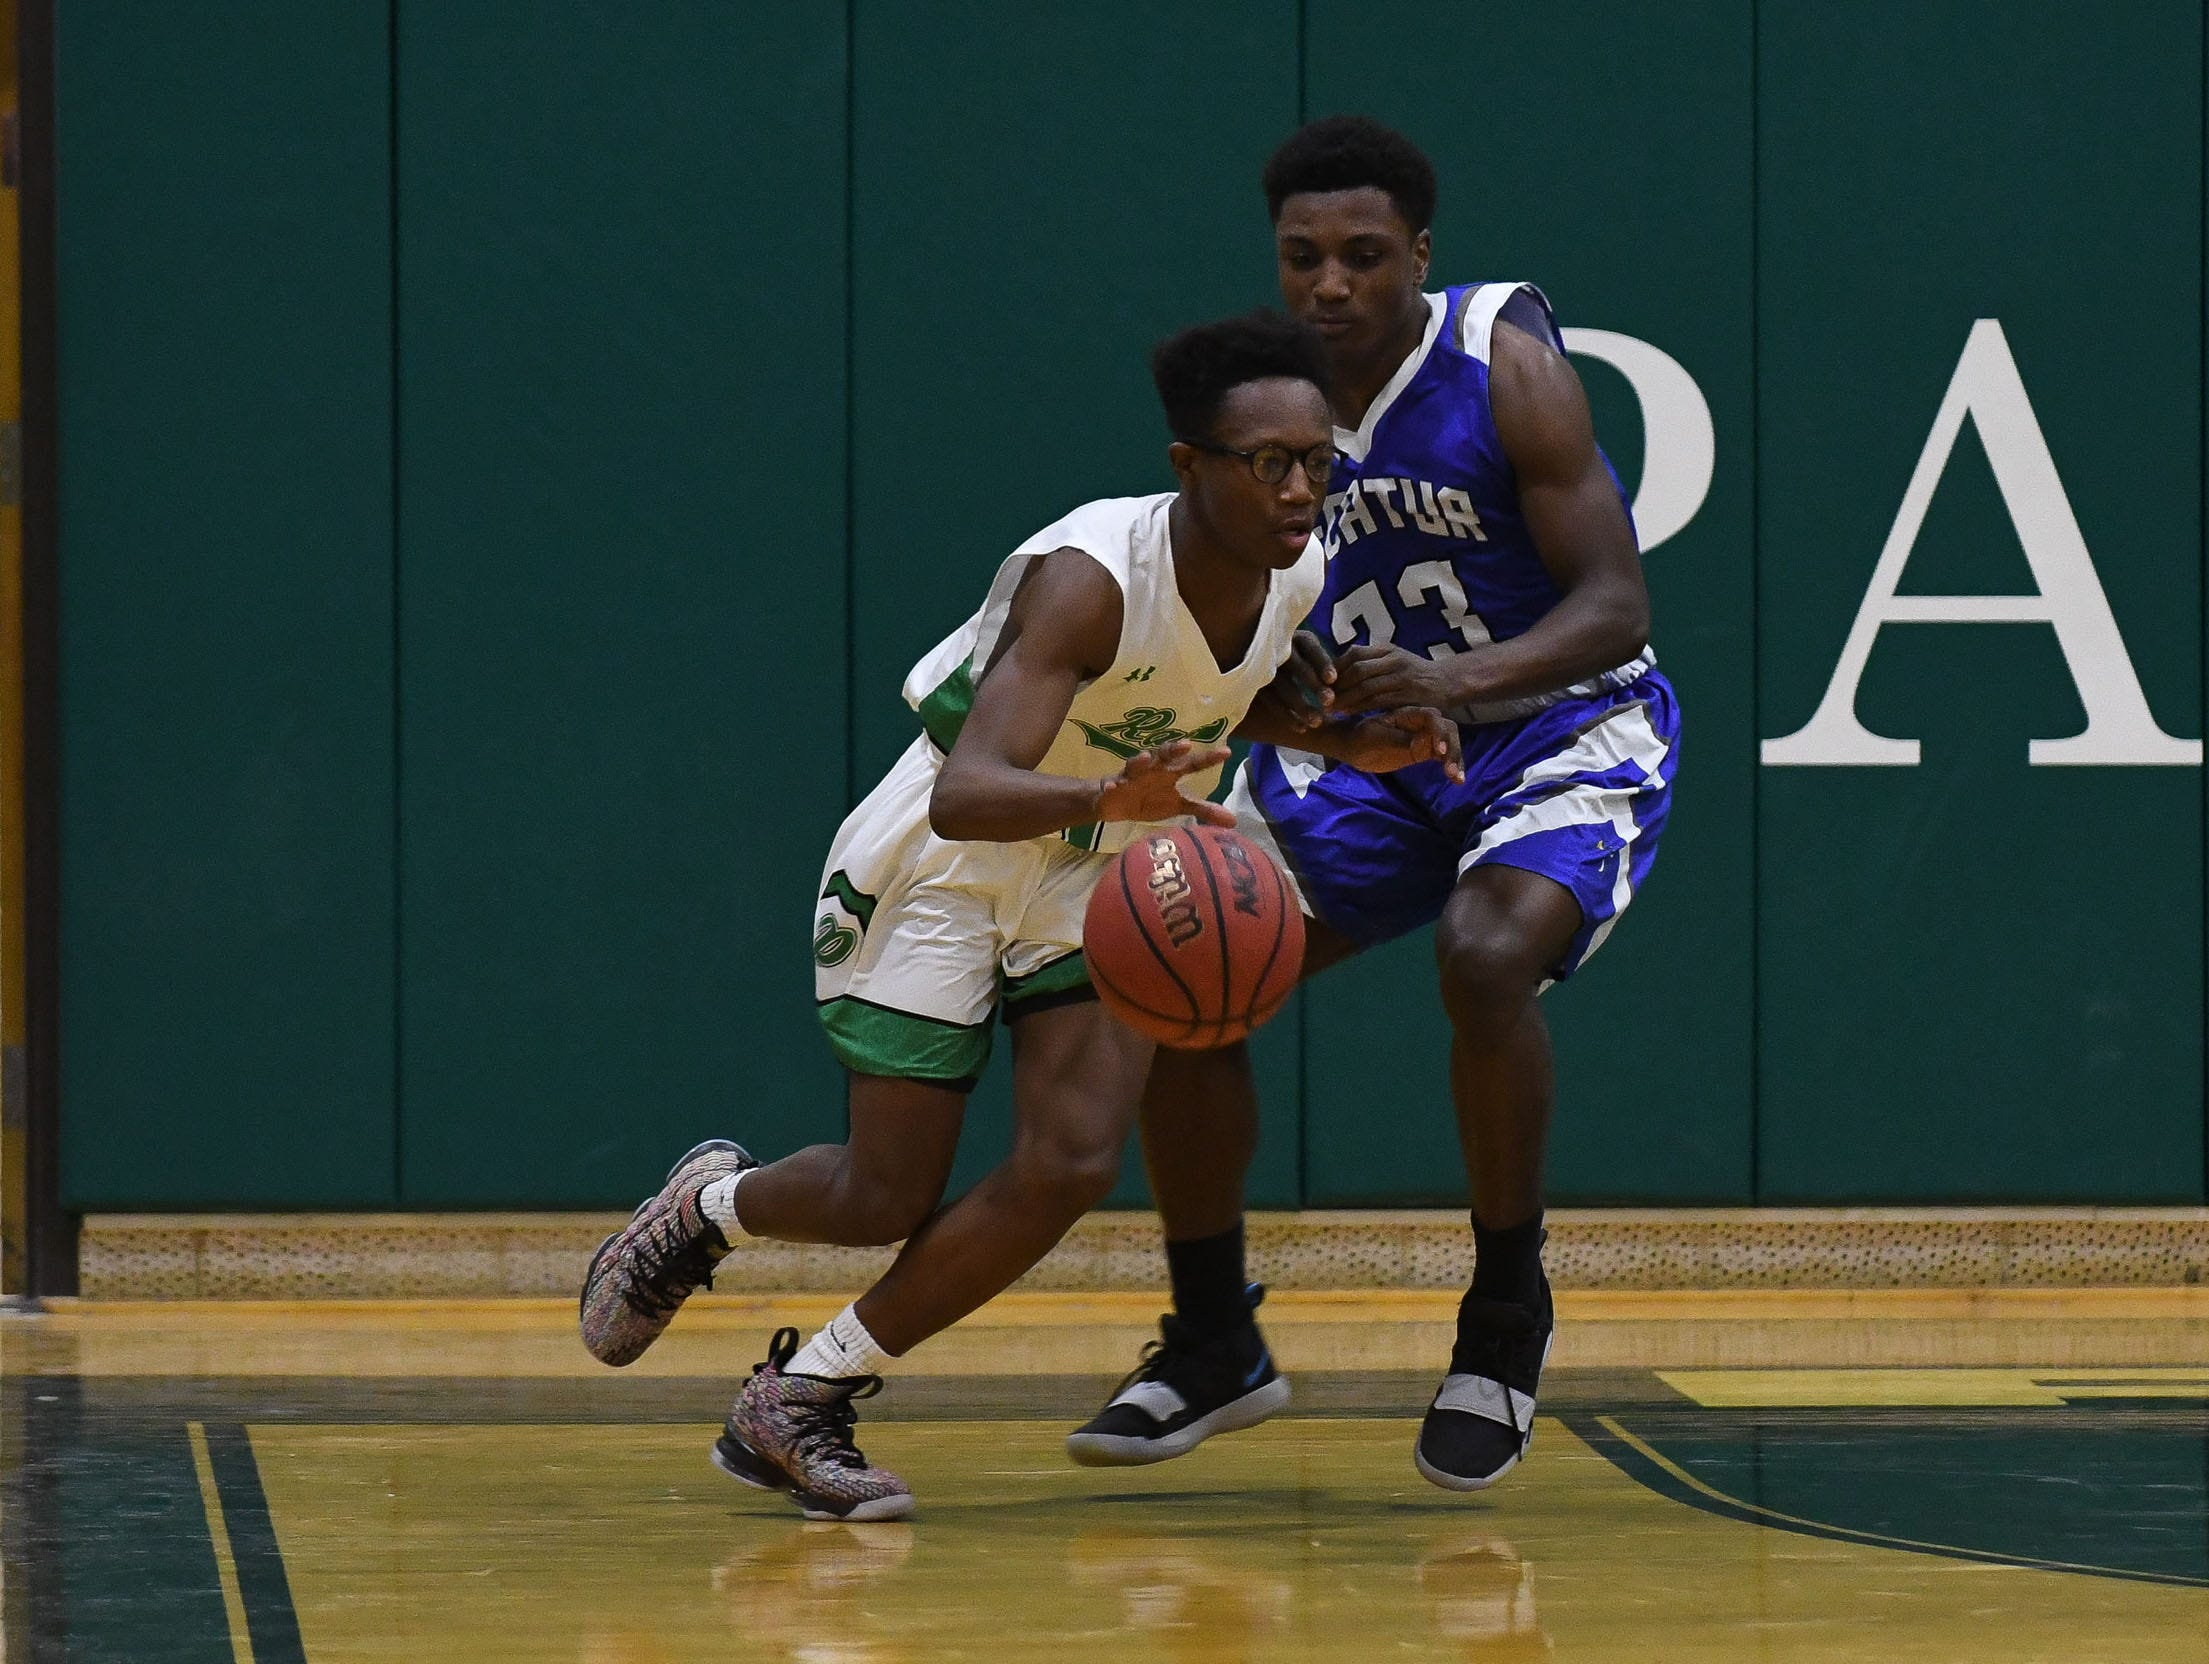 Parkside's Quamier Snell drives the ball down the court against Stephen Decatur on Thursday, Jan. 10, 2019.